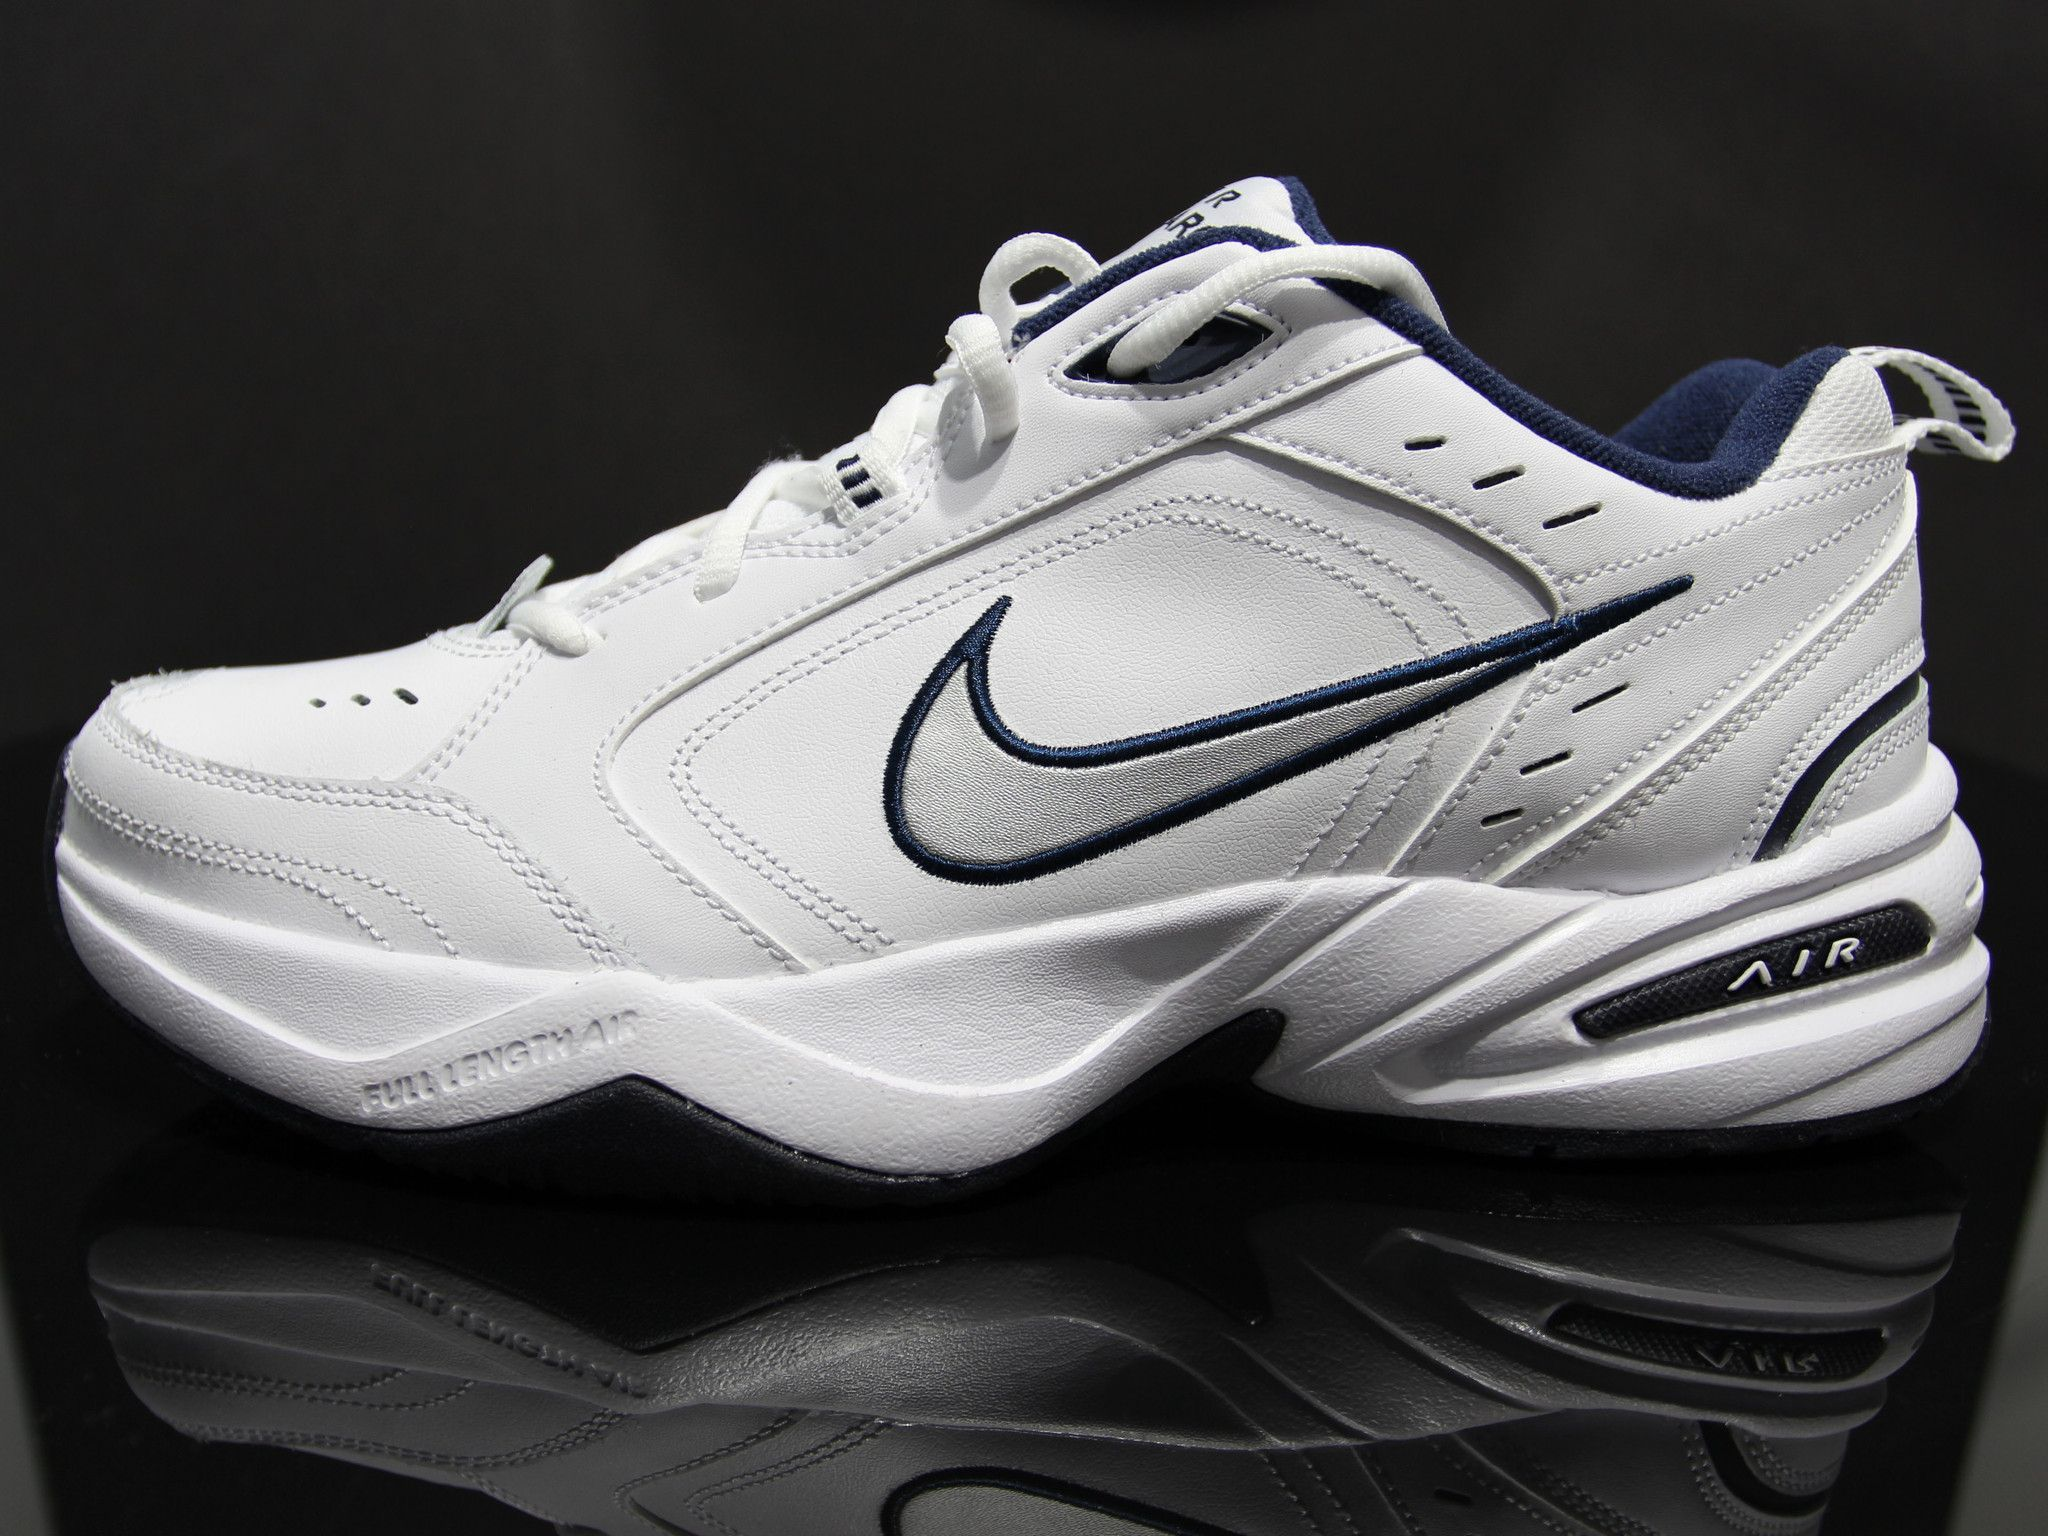 NIKE Air Monarch IV Classic Leather Sneakers Size 10 (White/Midnight Navy)  | shoes | Pinterest | Nike air monarch, Classic leather and Leather sneakers